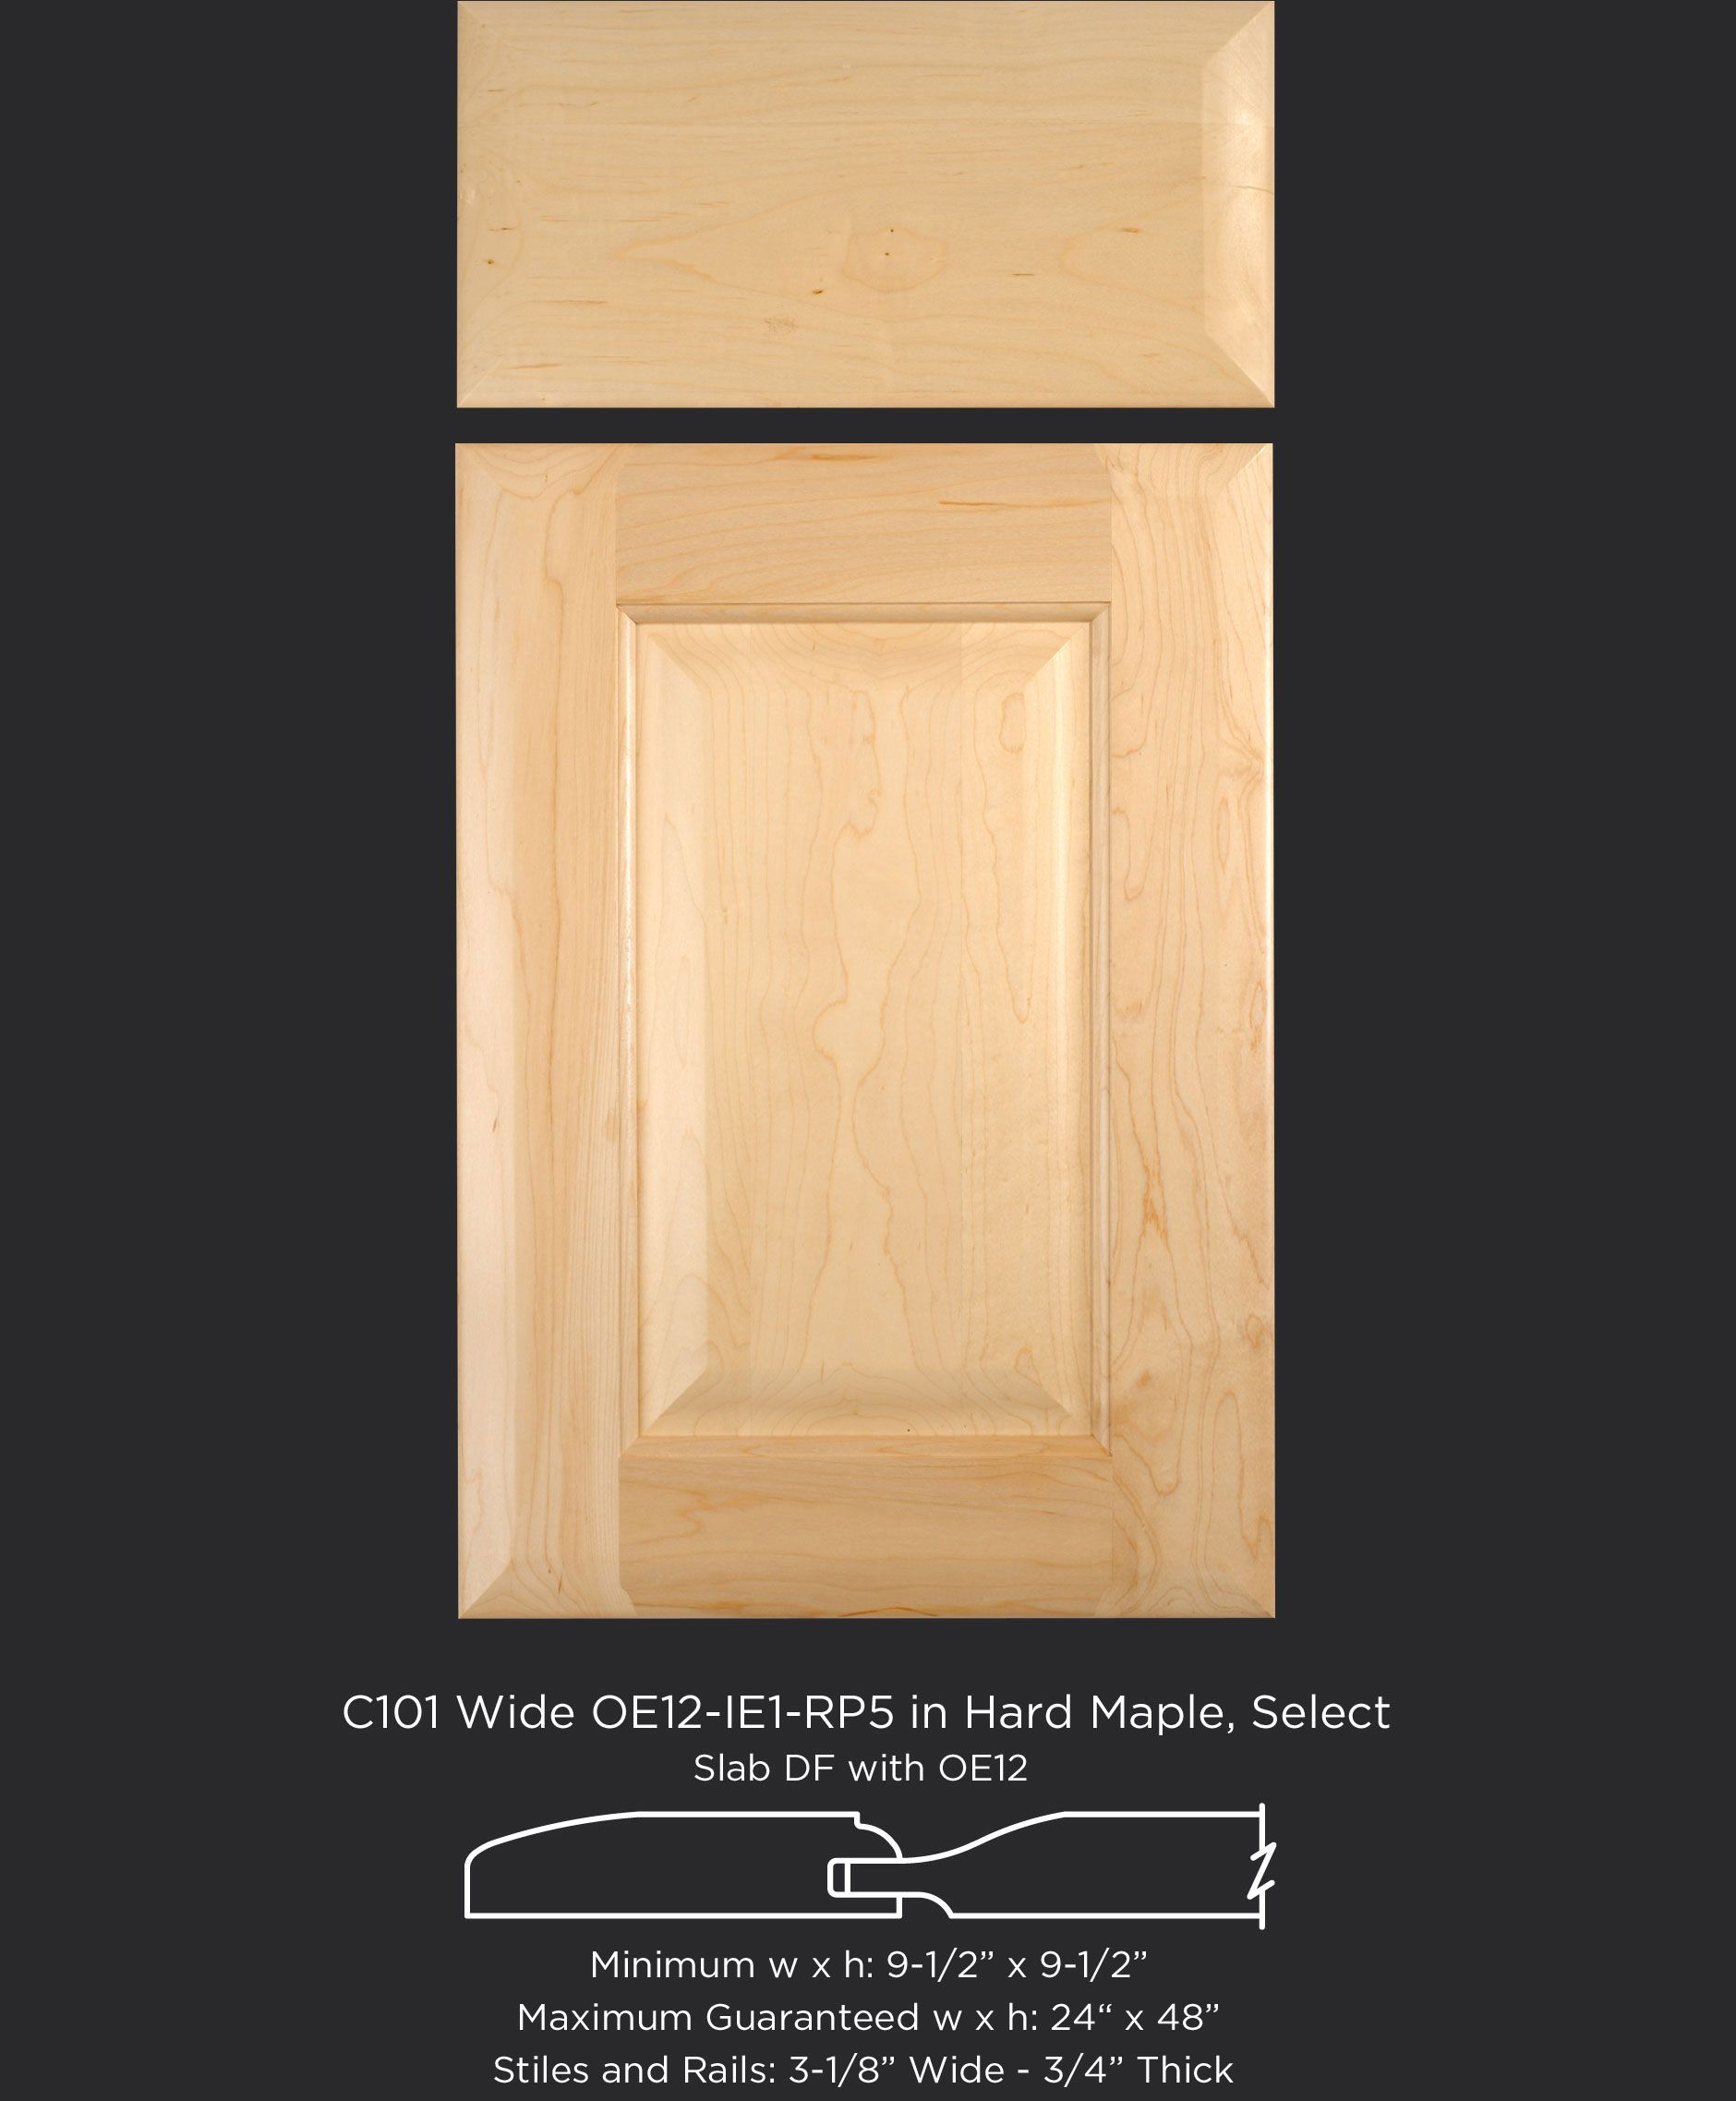 Hard Maple Cope And Stick Cabinet Door With Wide 3 18 Stiles And